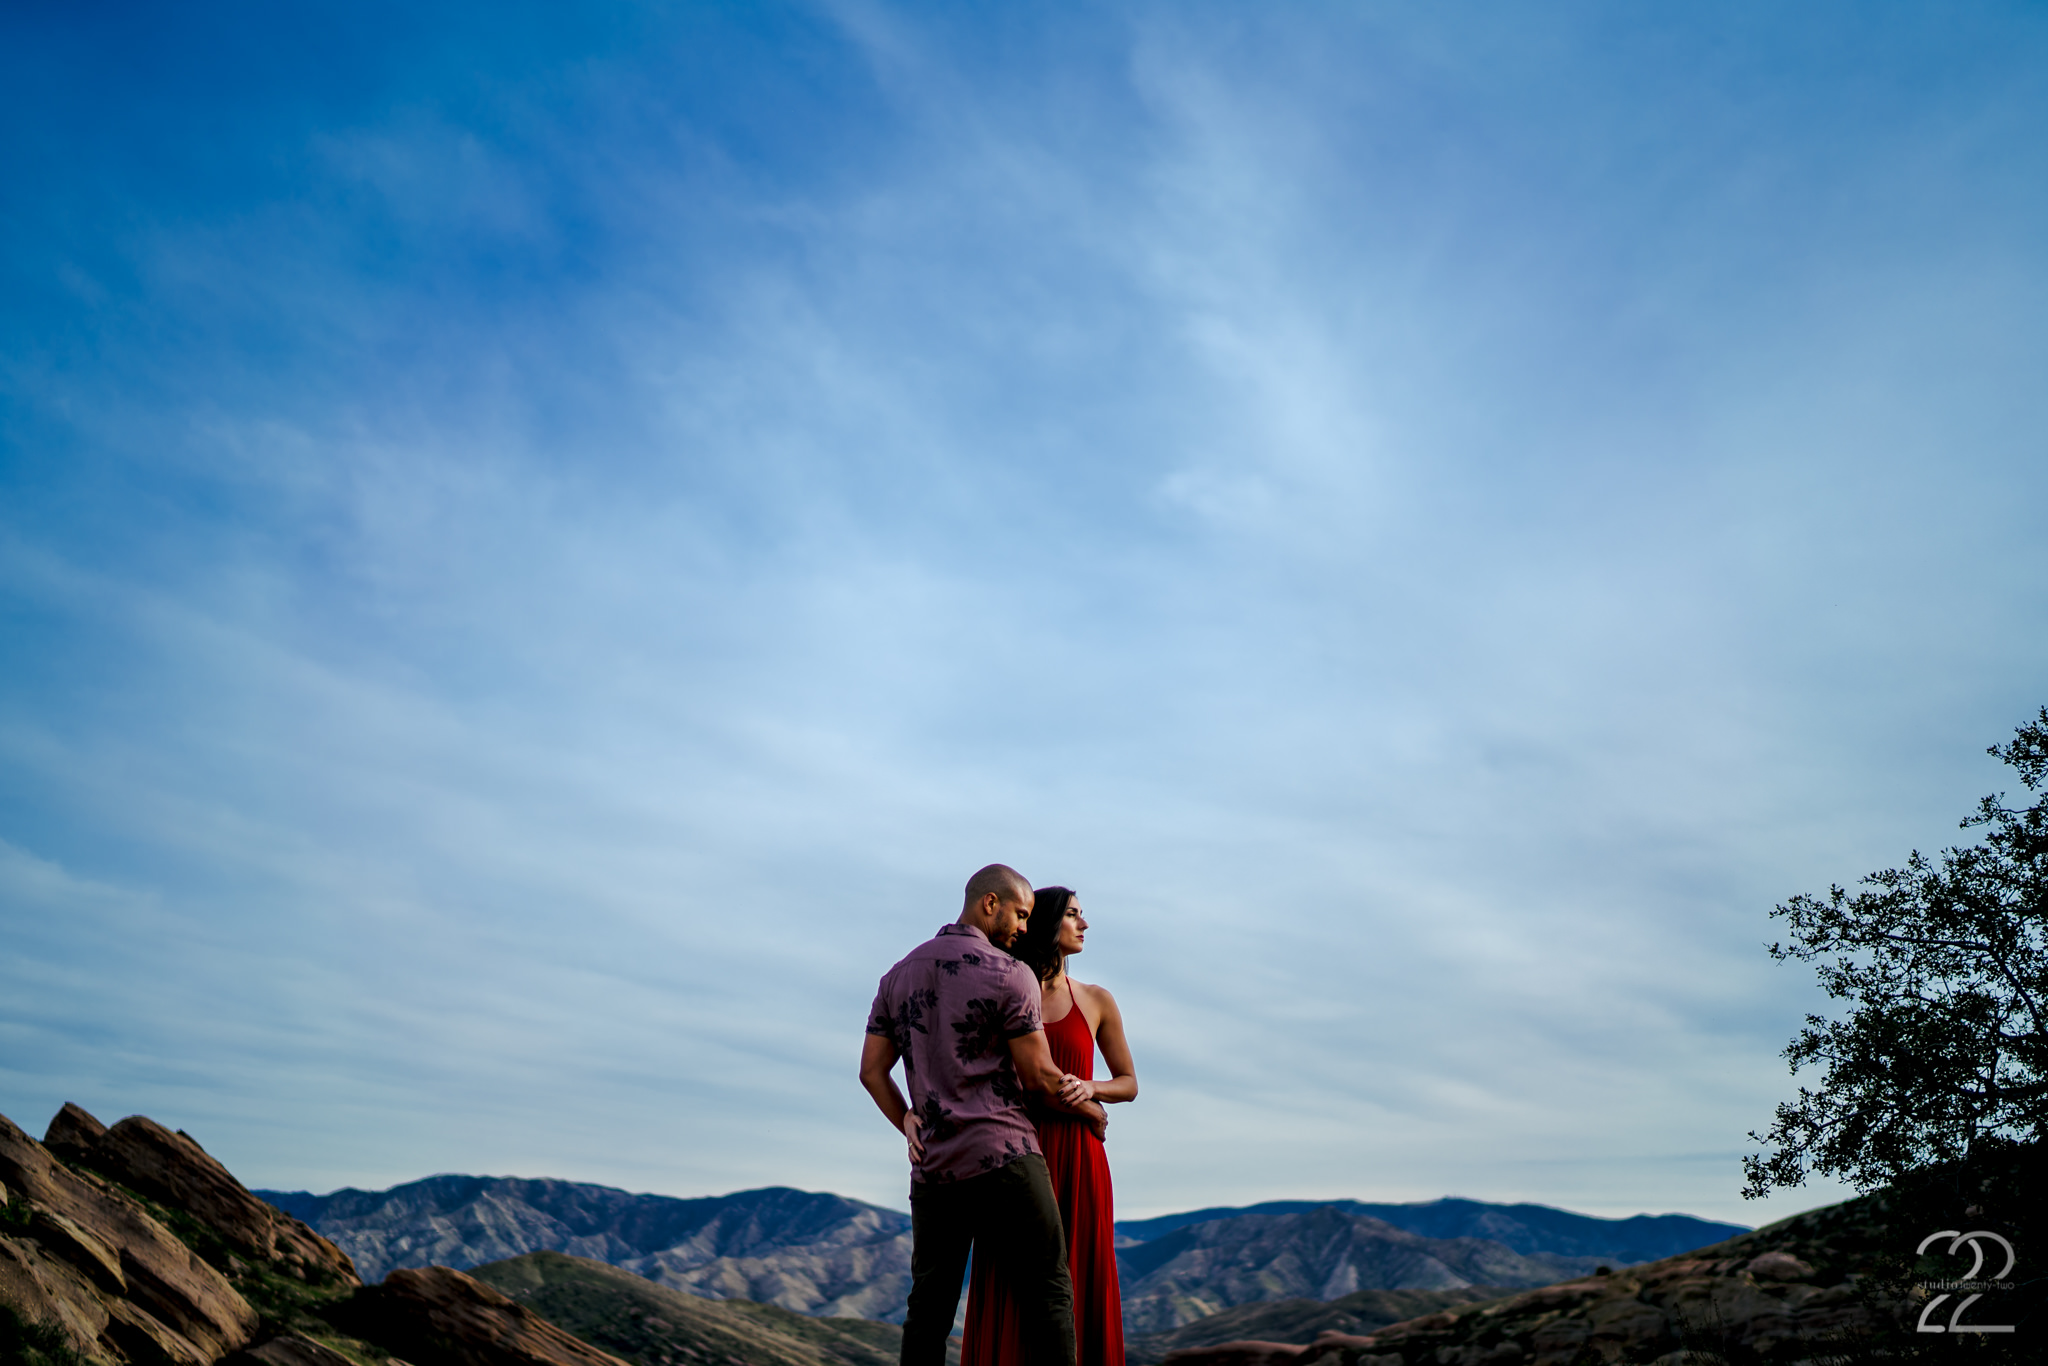 With such beauty as the Vasquez Rocks as a backdrop for a couples, wedding, or engagement session, you cannot go wrong! High on top of a rocky mountain, Michael embraces Natalie as they look toward the sunset. Intimate environmental portraits are always some of my favorites, as it feels like you see the couple being one with nature. The West Coast is always one of my favorite places to be a wedding and engagement photographer, and this time at the Vasquez Rocks did not disappoint!  Sony A7Riii | Sony 35mm f/1.4 @ f/1.4 | ISO 50 |  1/2500 sec | DVLOP presets: Jide Assumpção